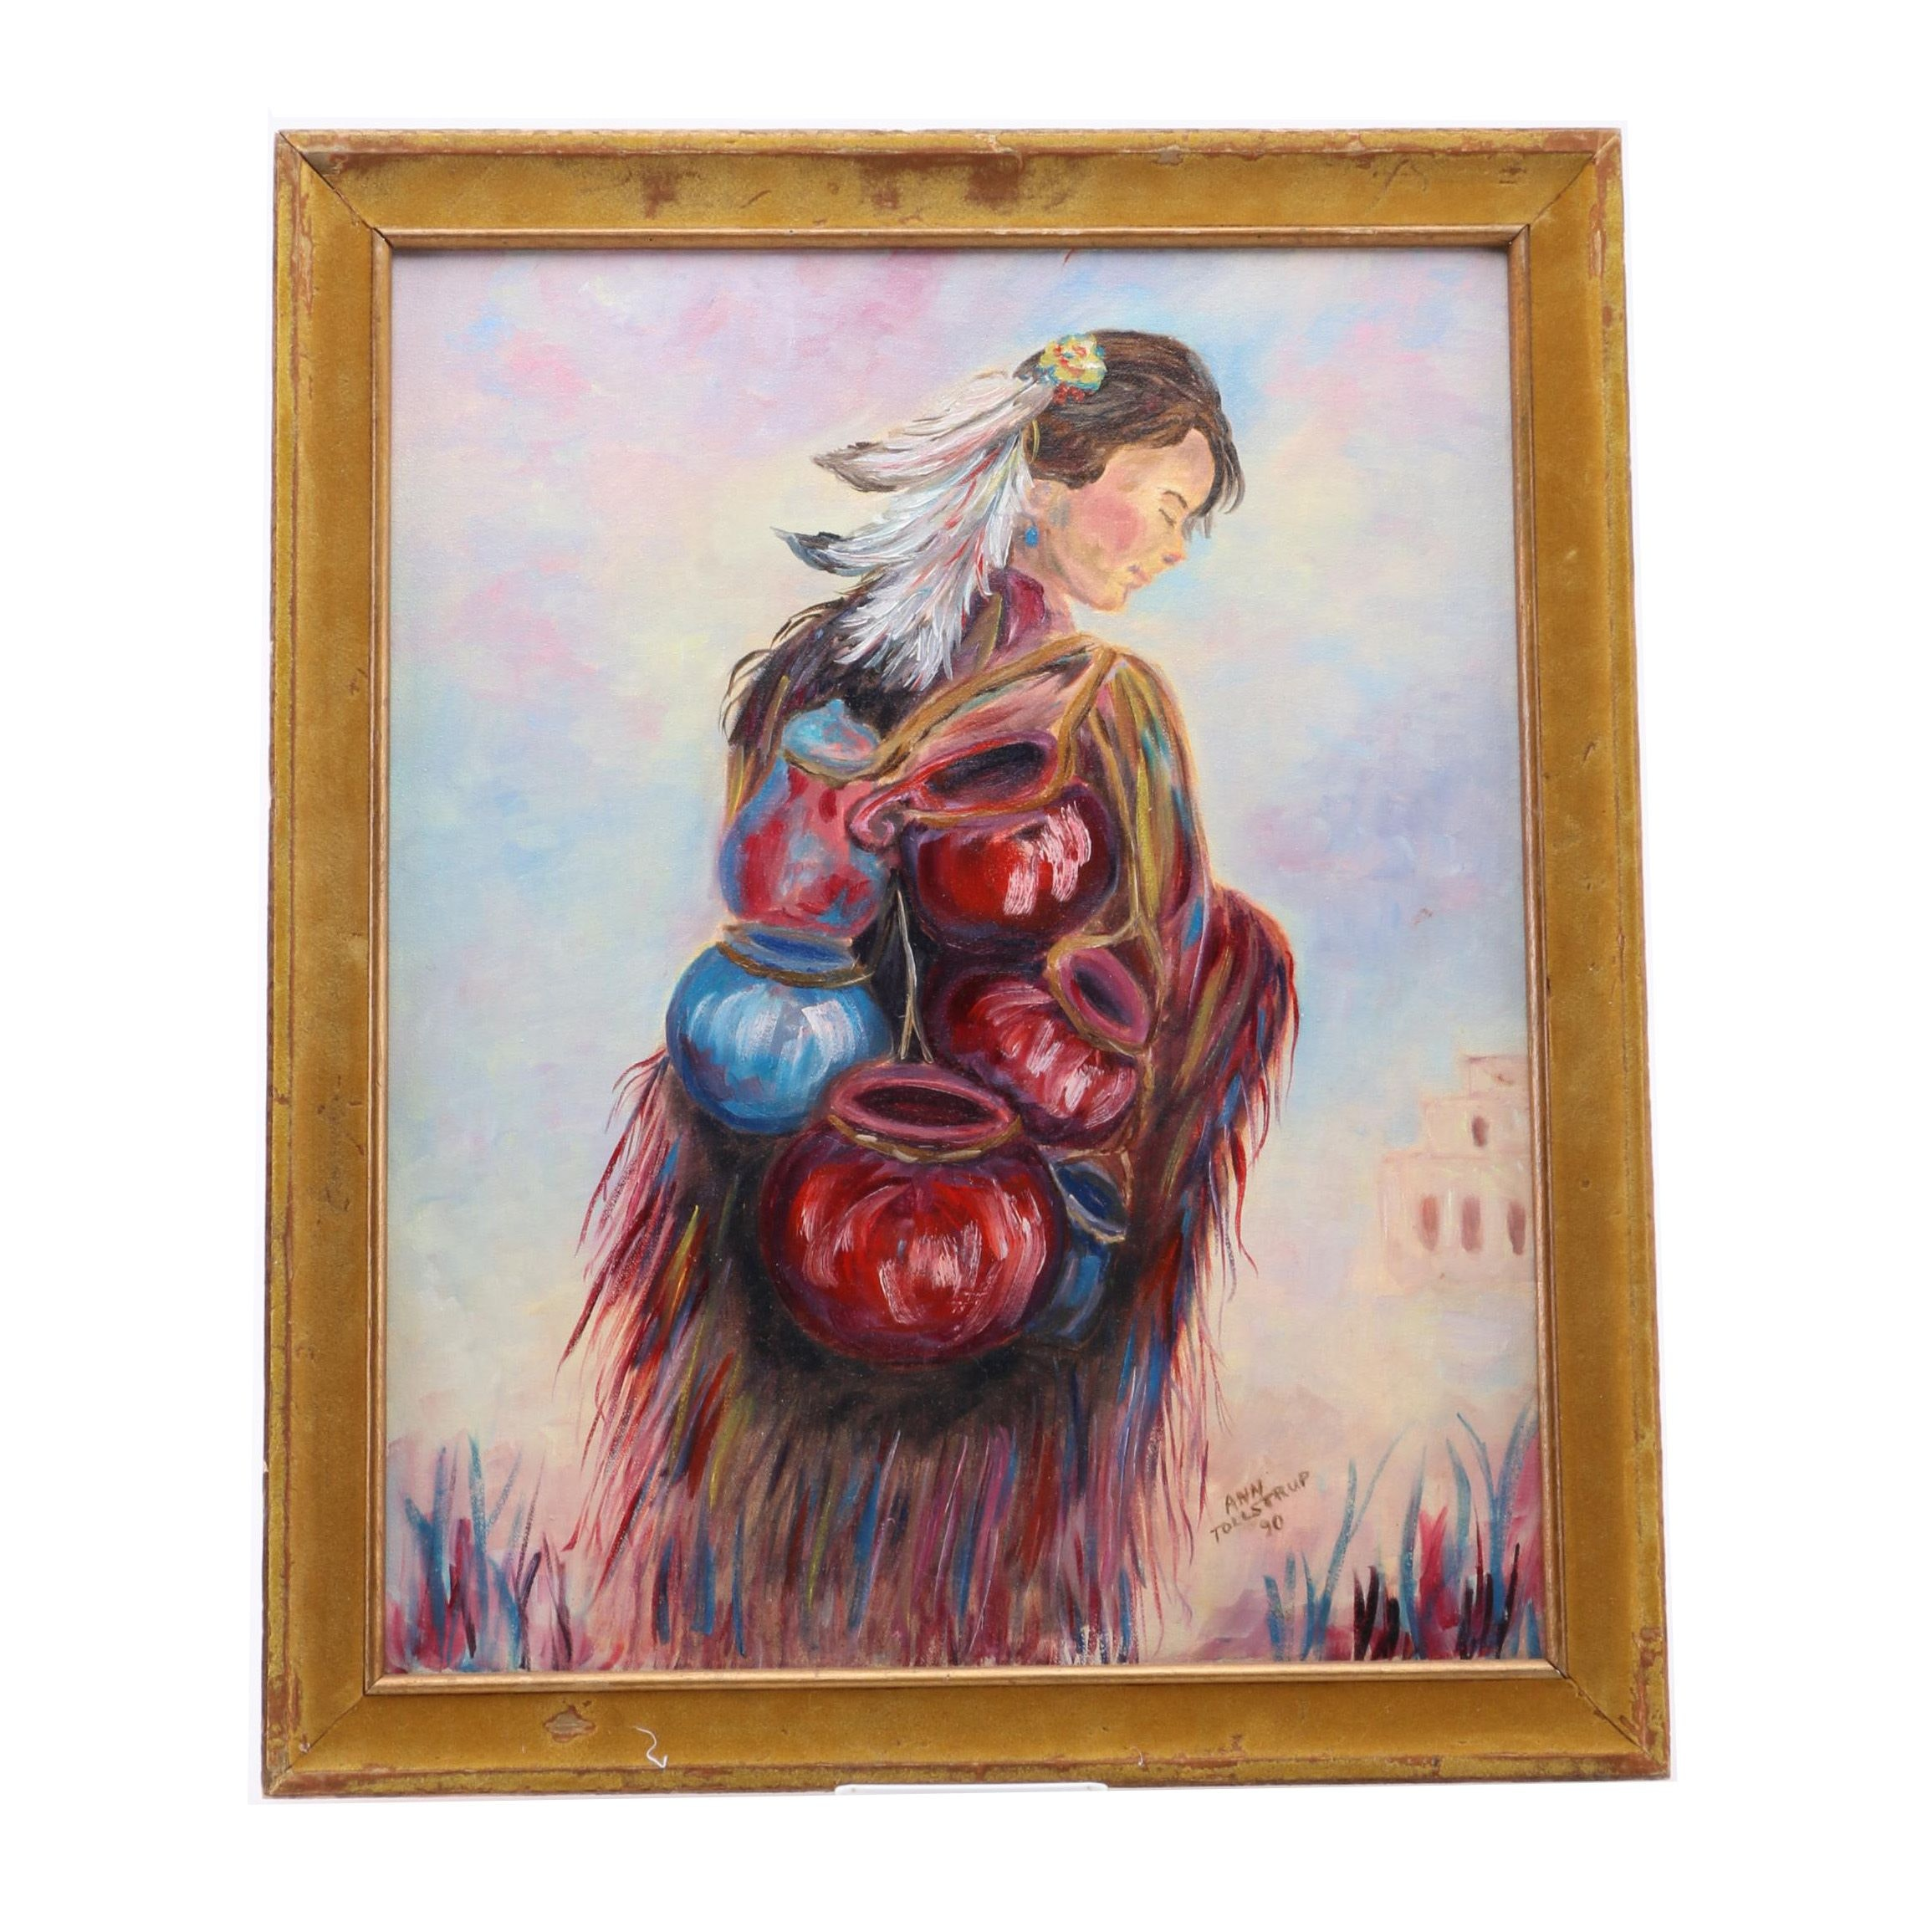 Ann Tollstrup Oil Painting on Canvas of Woman Carrying Vases